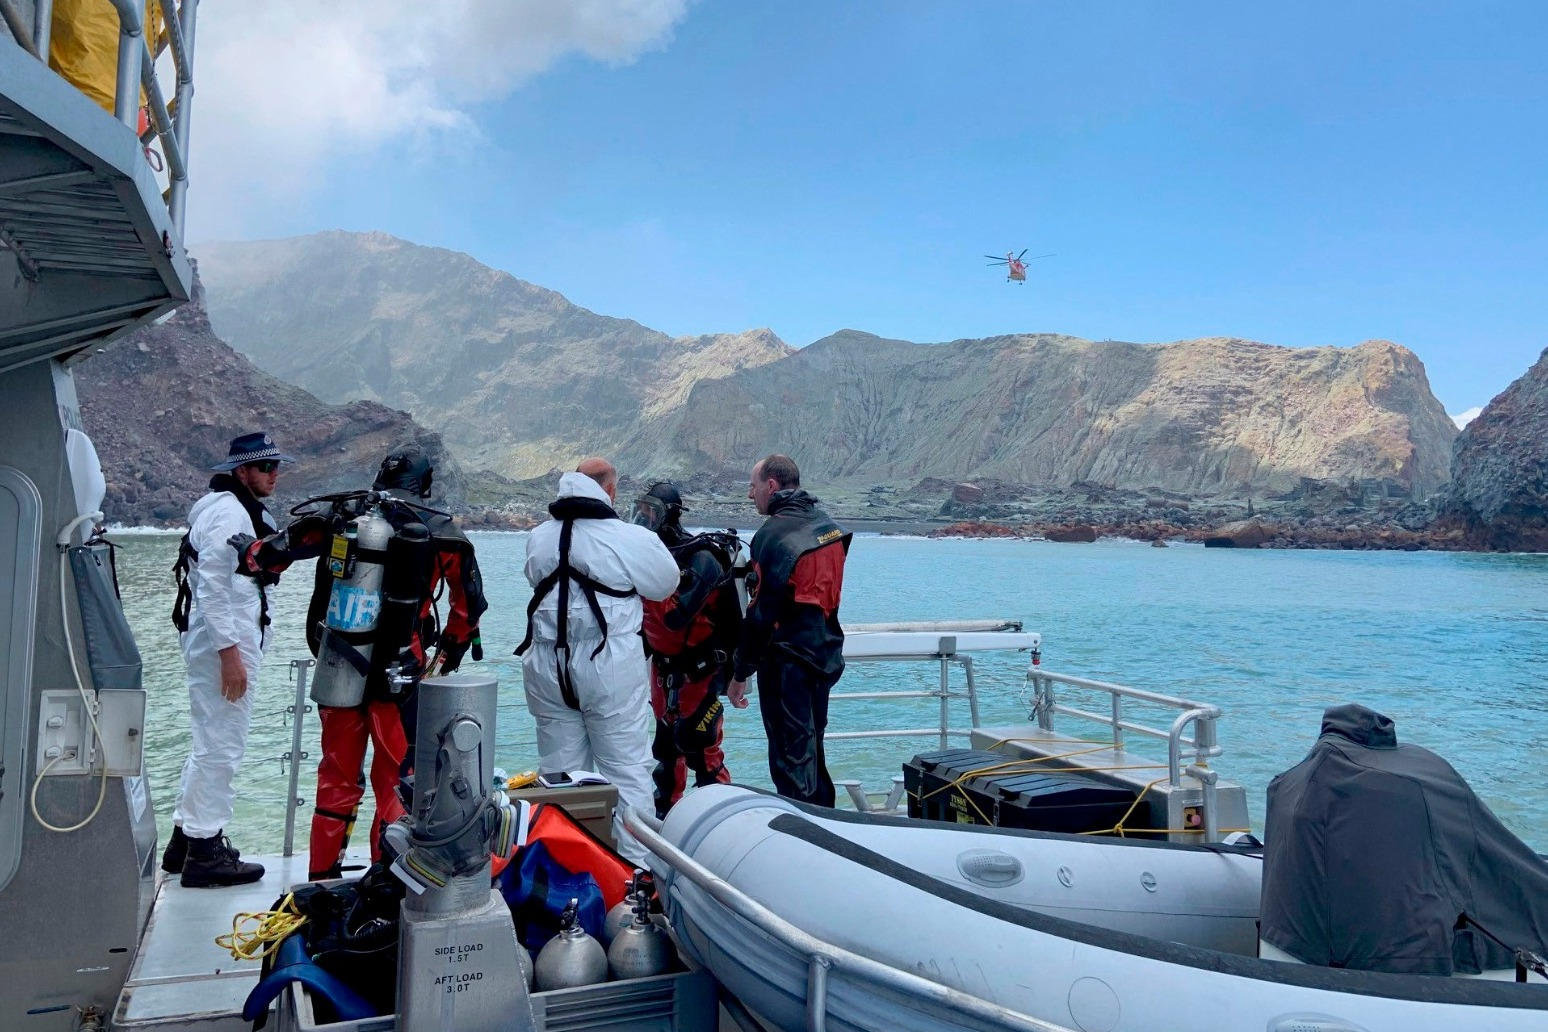 TOXIC AIR AND GASES HAMPER SEARCH FOR LAST TWO VICTIMS OF NEW ZEALAND VOLCANO